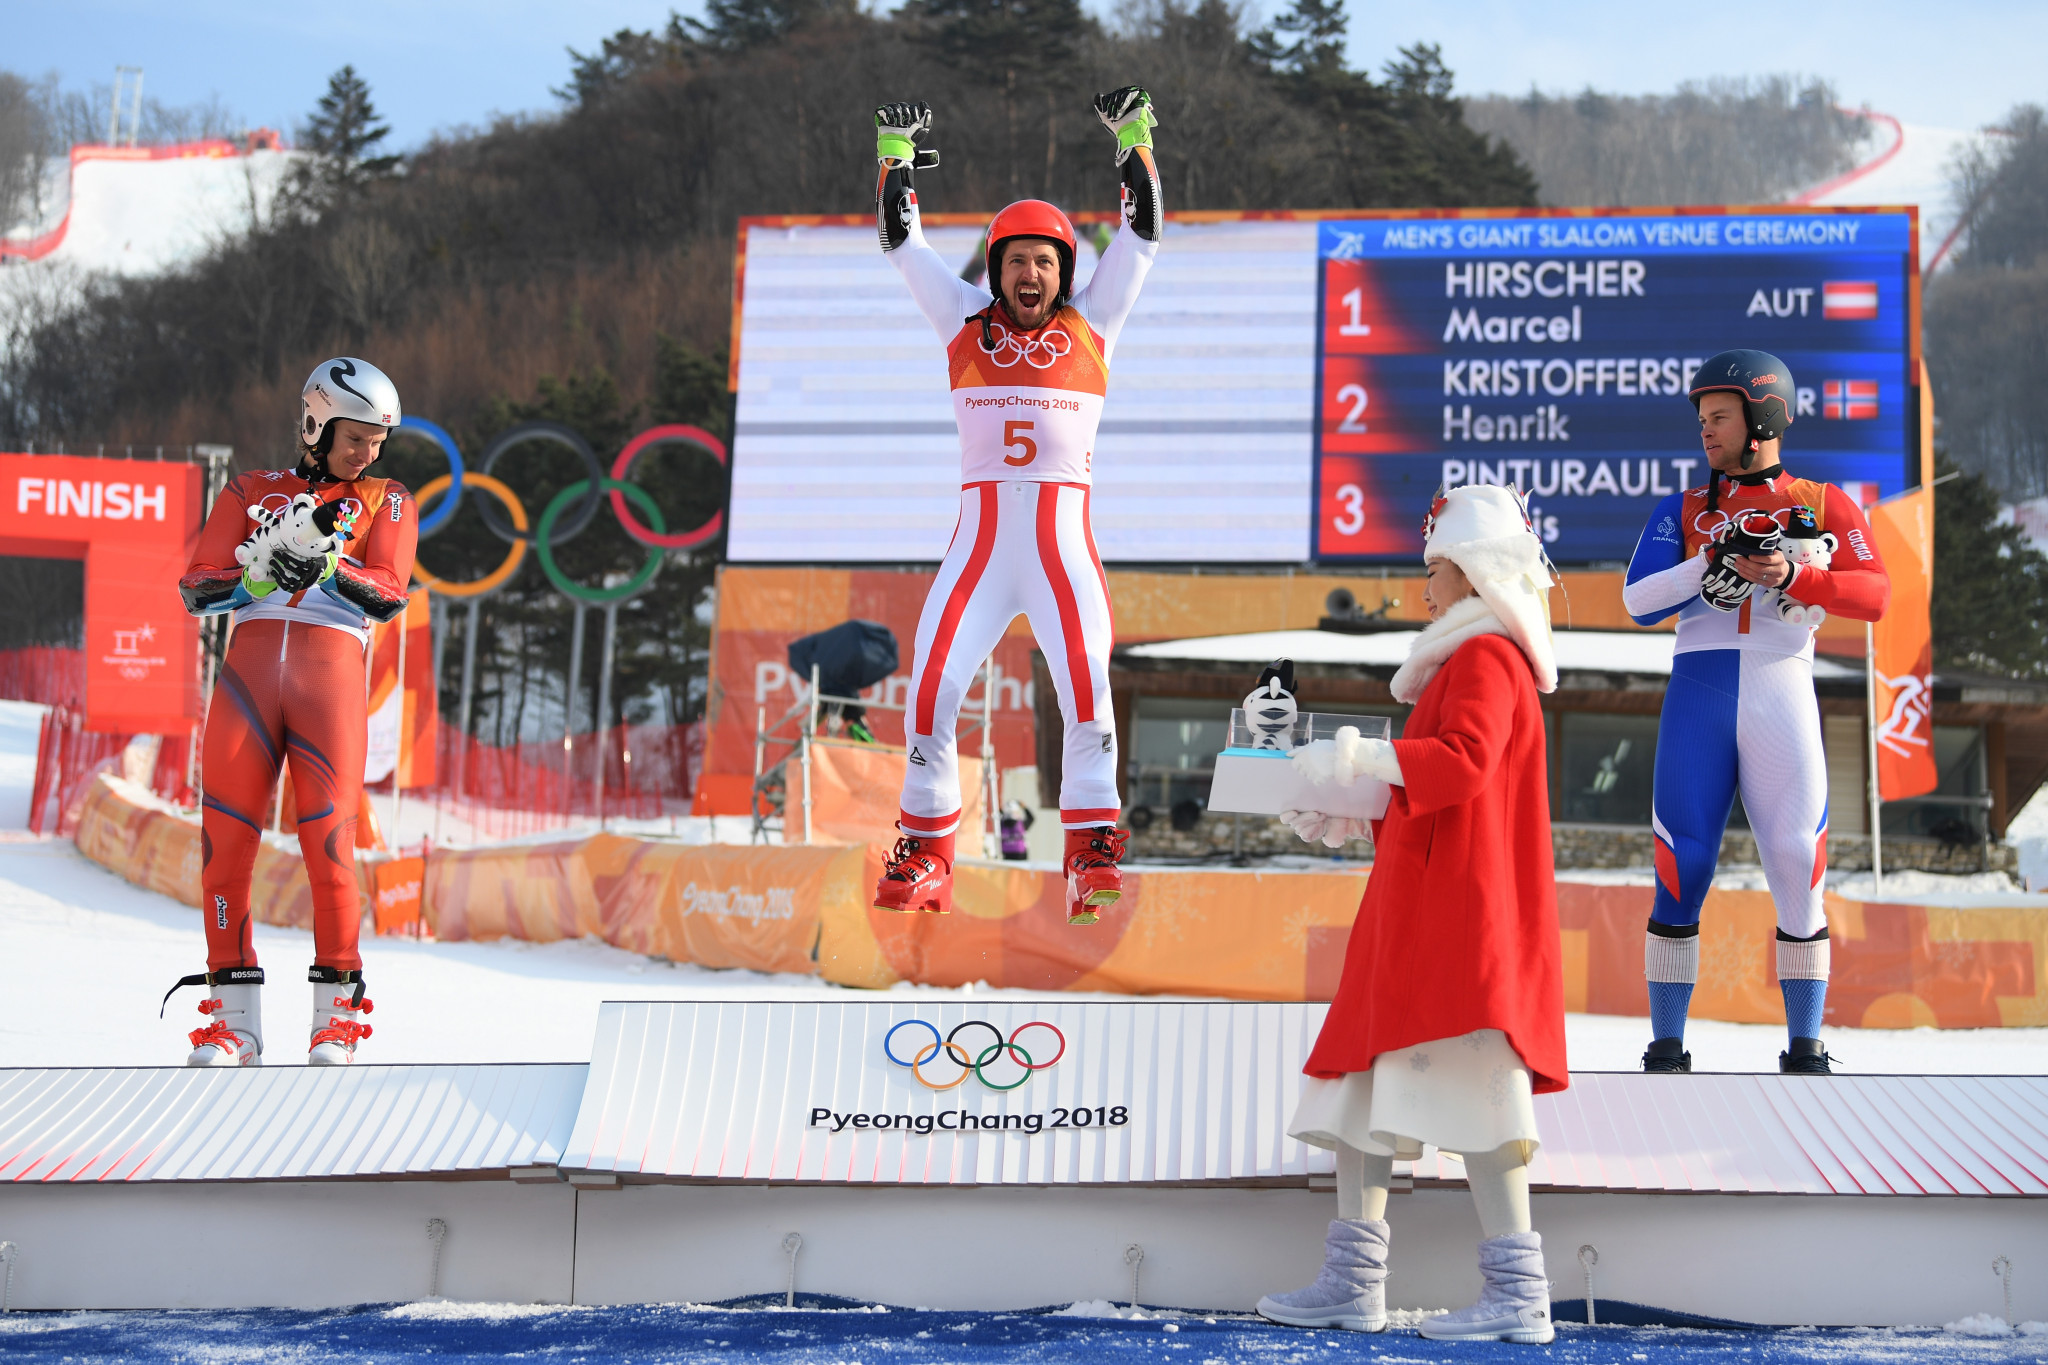 Marcel Hirscher dominated both runs to finish at the top of the podium for the second time at Pyeongchang 2018 ©Getty Images